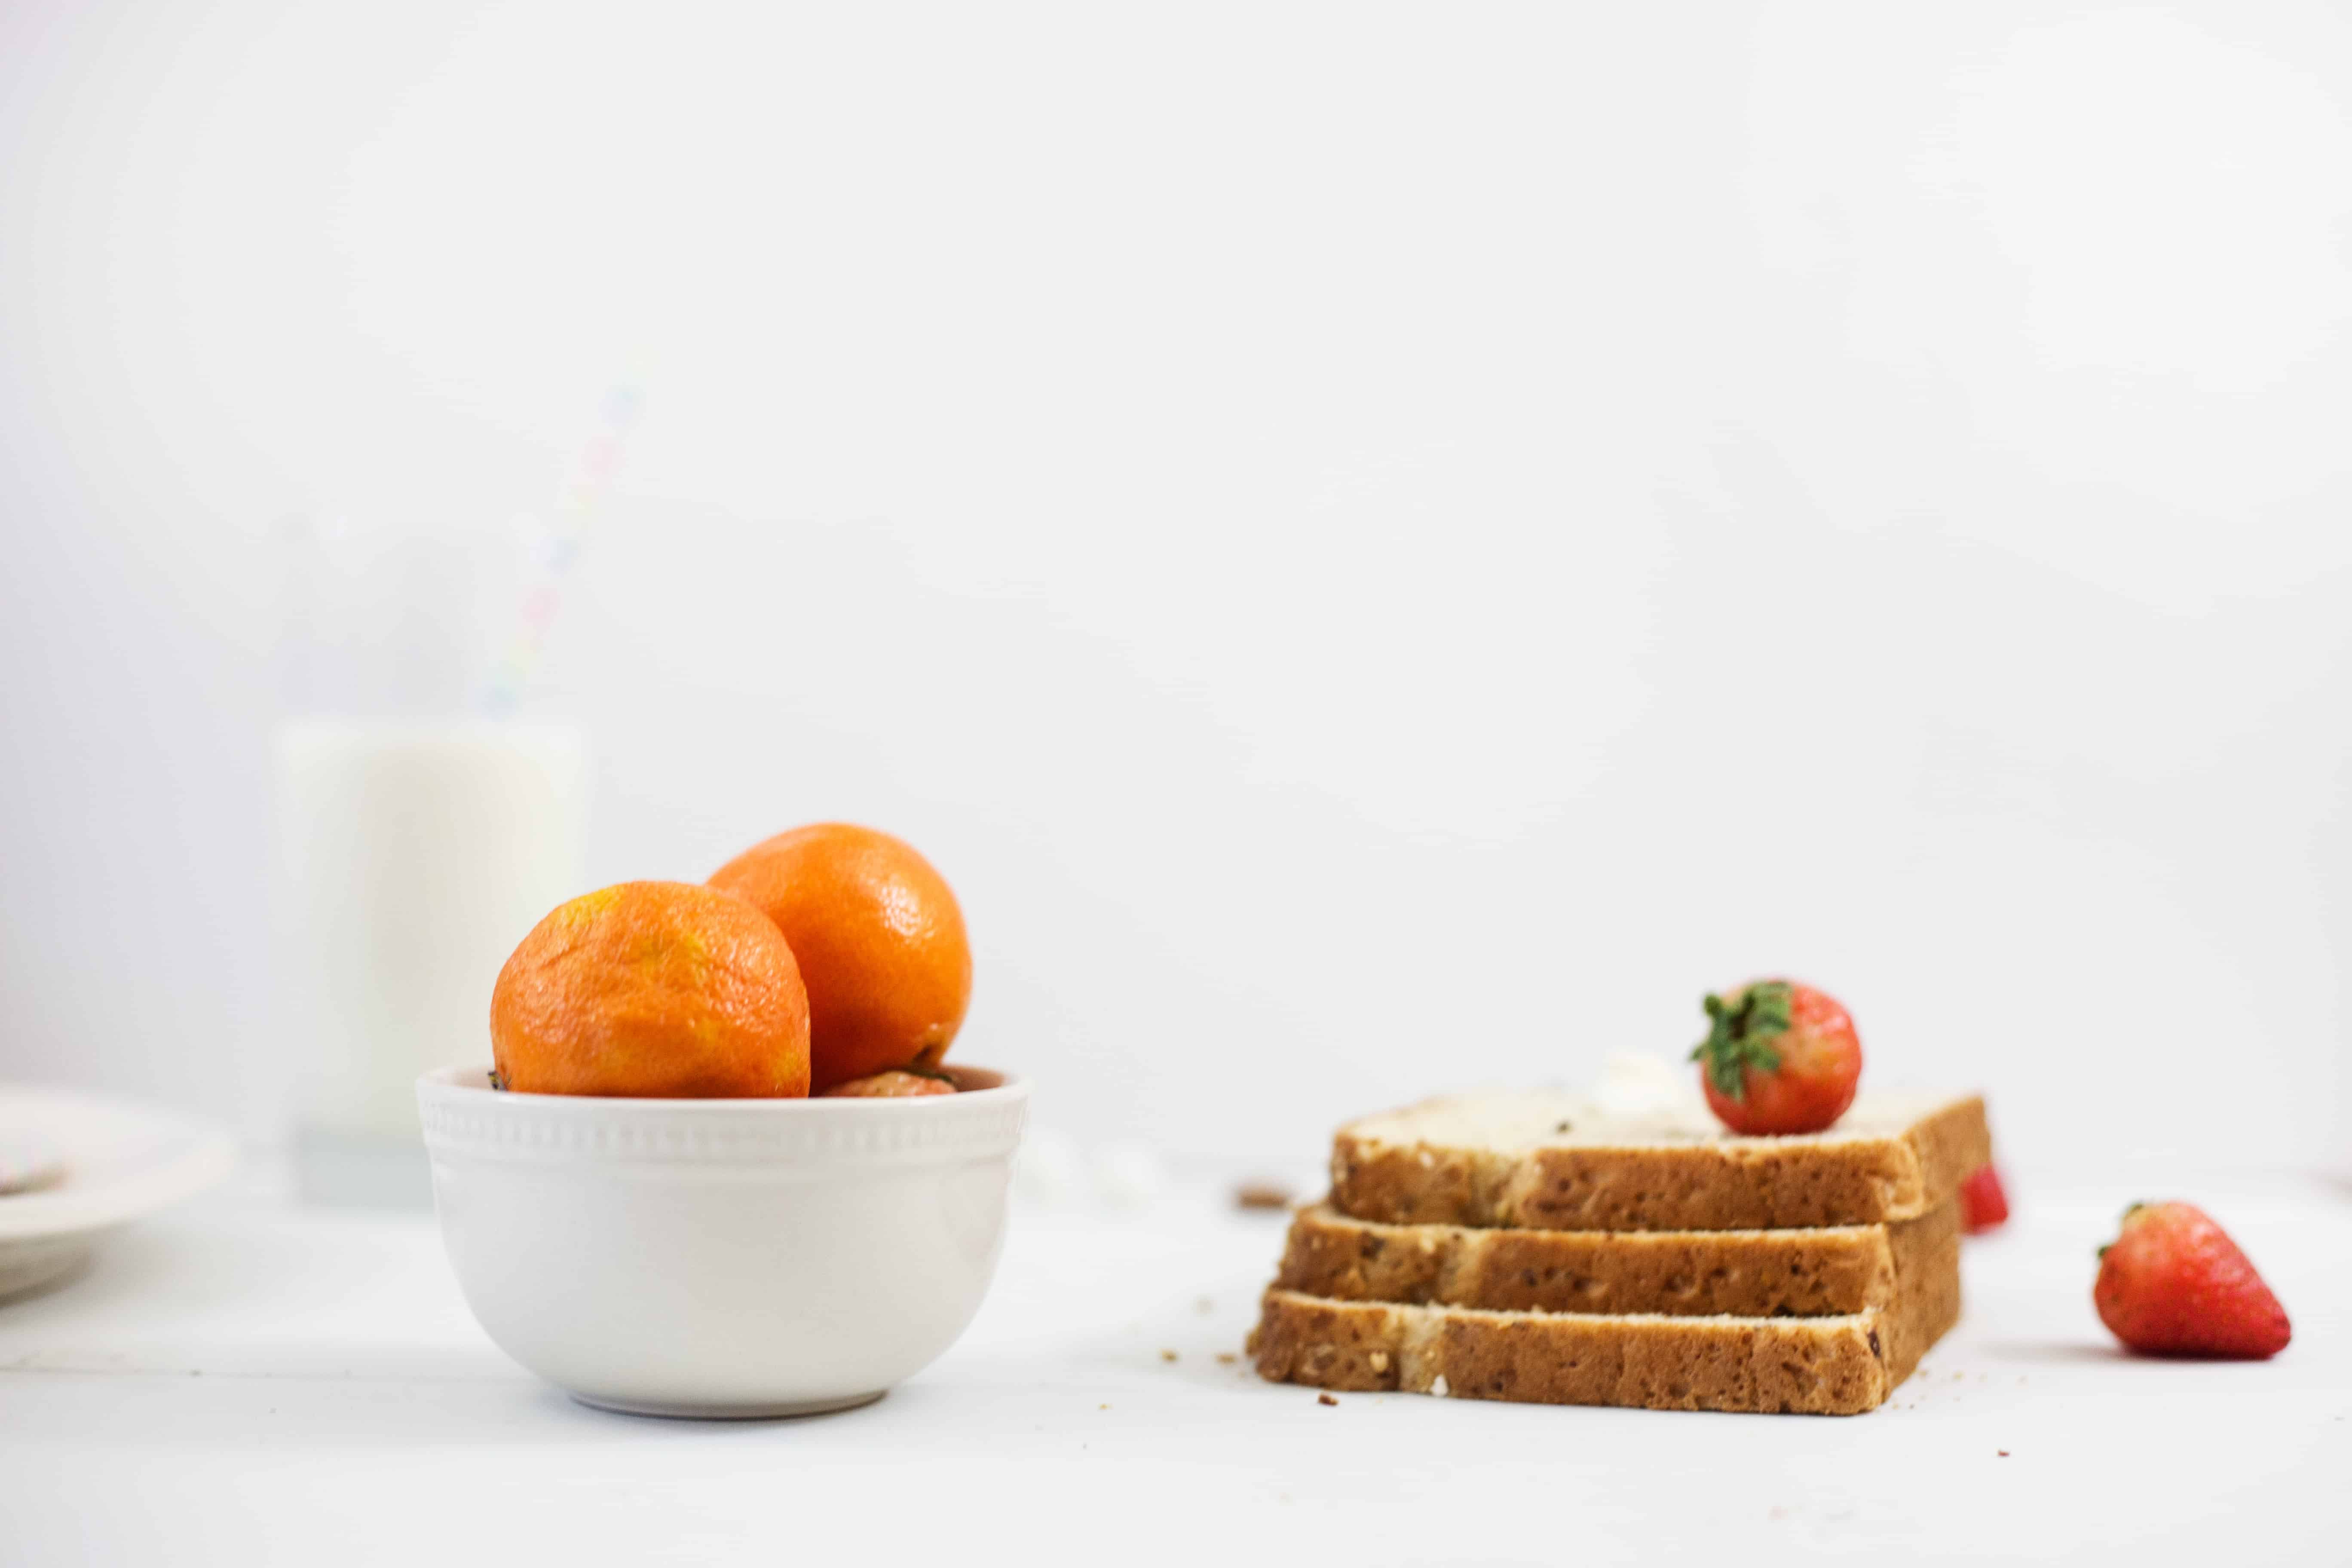 plan a healthy breakfast as part of your morning routine at home